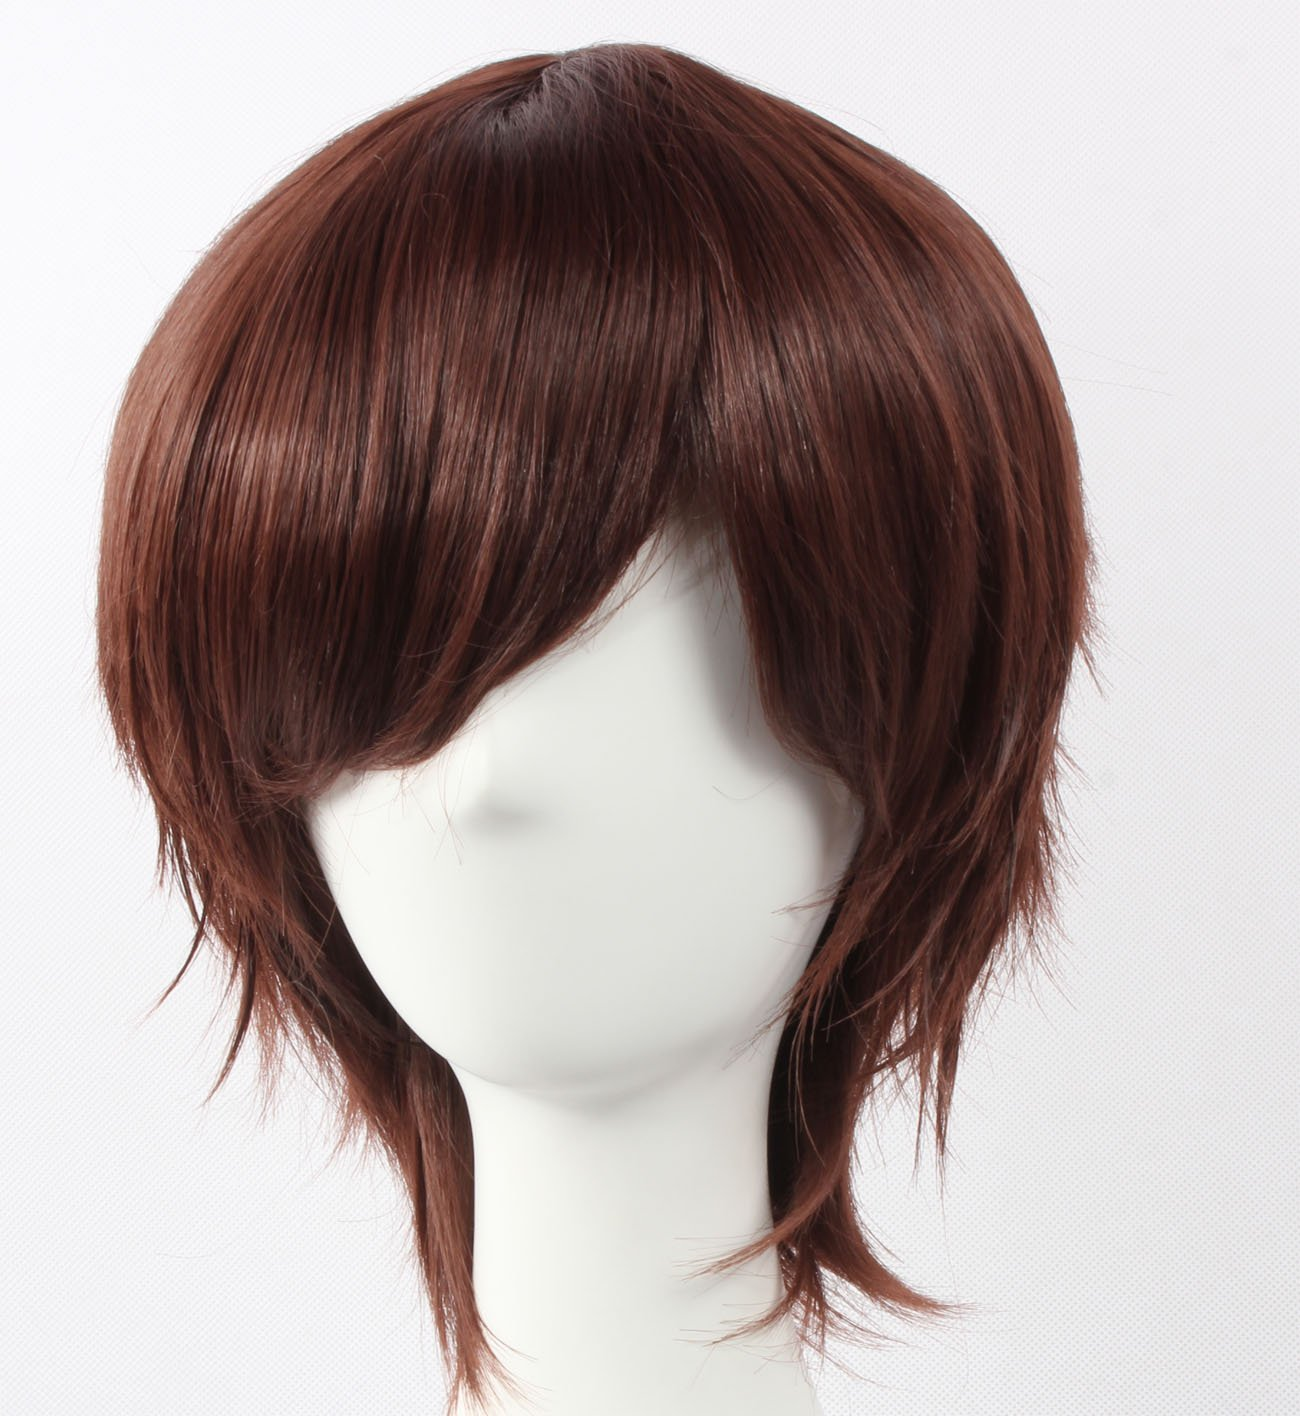 Coolsky Wig Dark Brown Wig Short Dark Brown Layered Wig Axis powers BASARA Wi